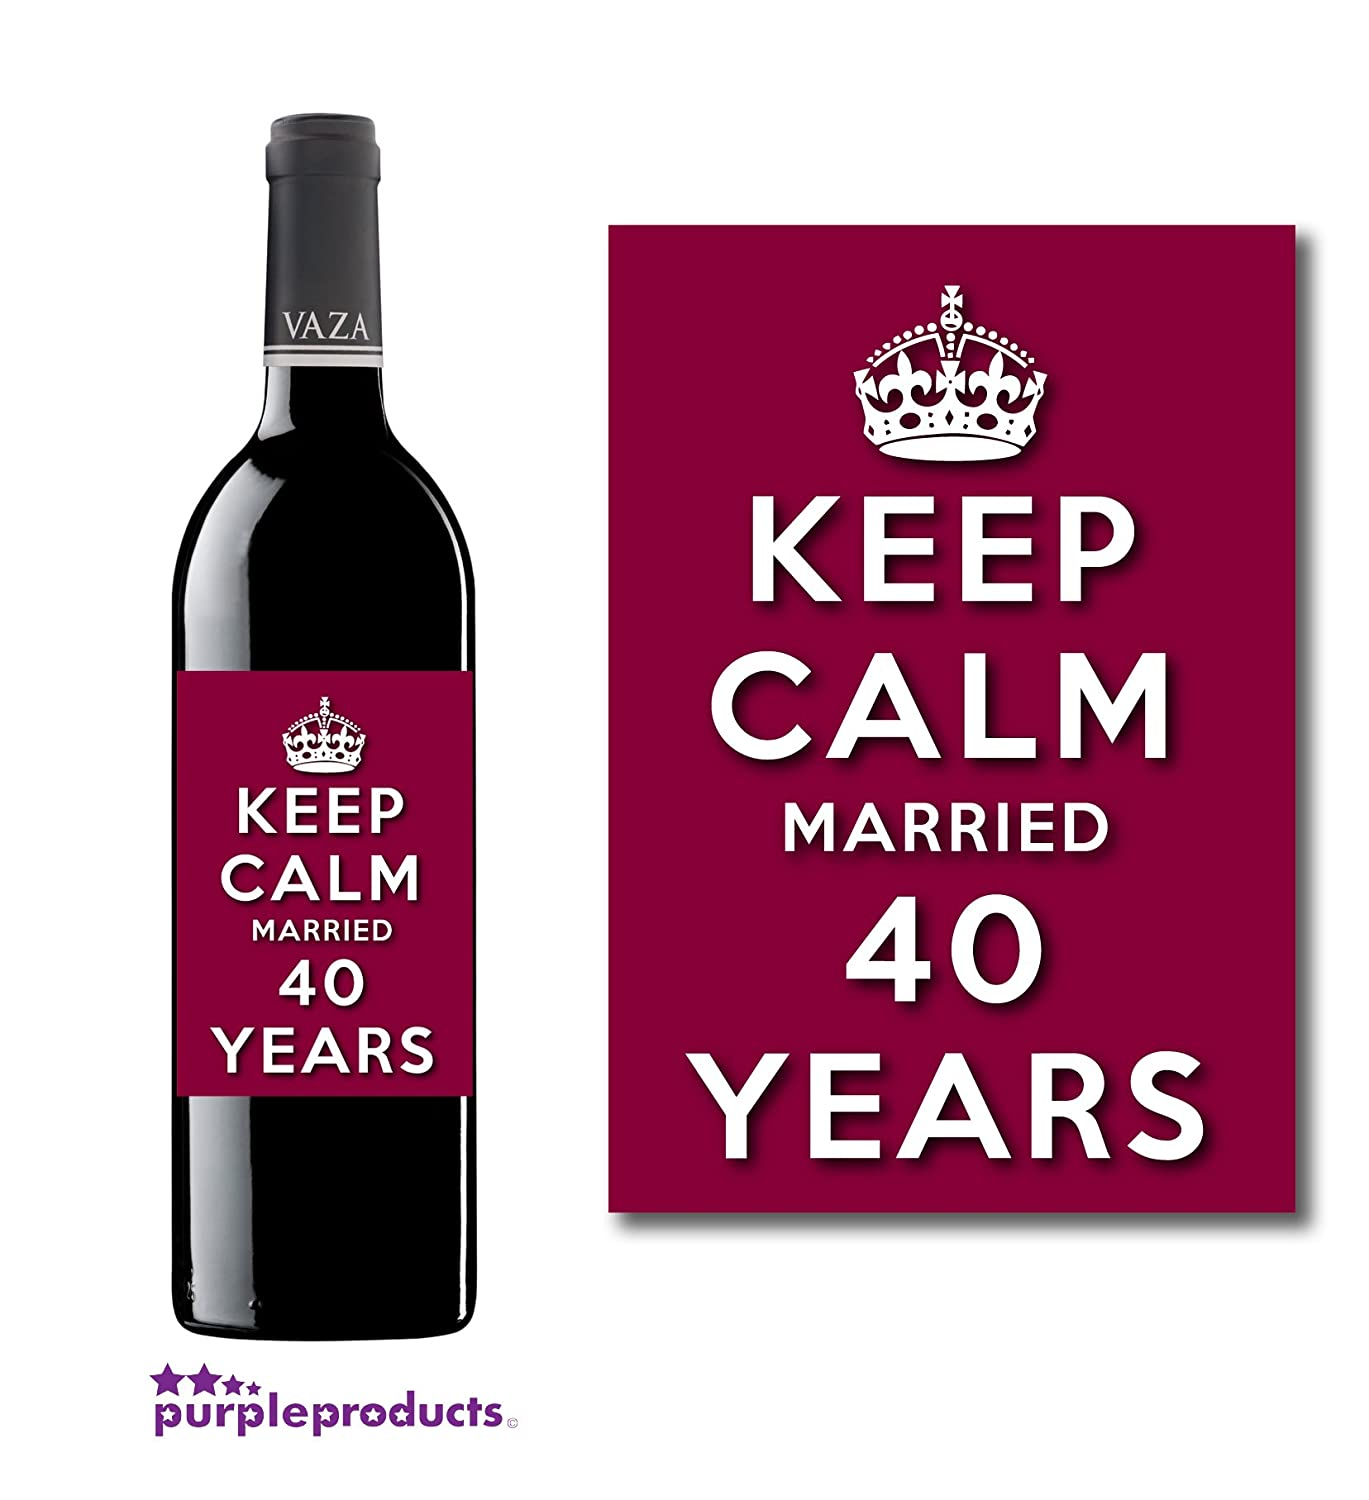 B 40th wedding anniversary gift Keep Calm 40th Ruby Wedding Anniversary Wine bottle label Celebration Gift for Women and Men